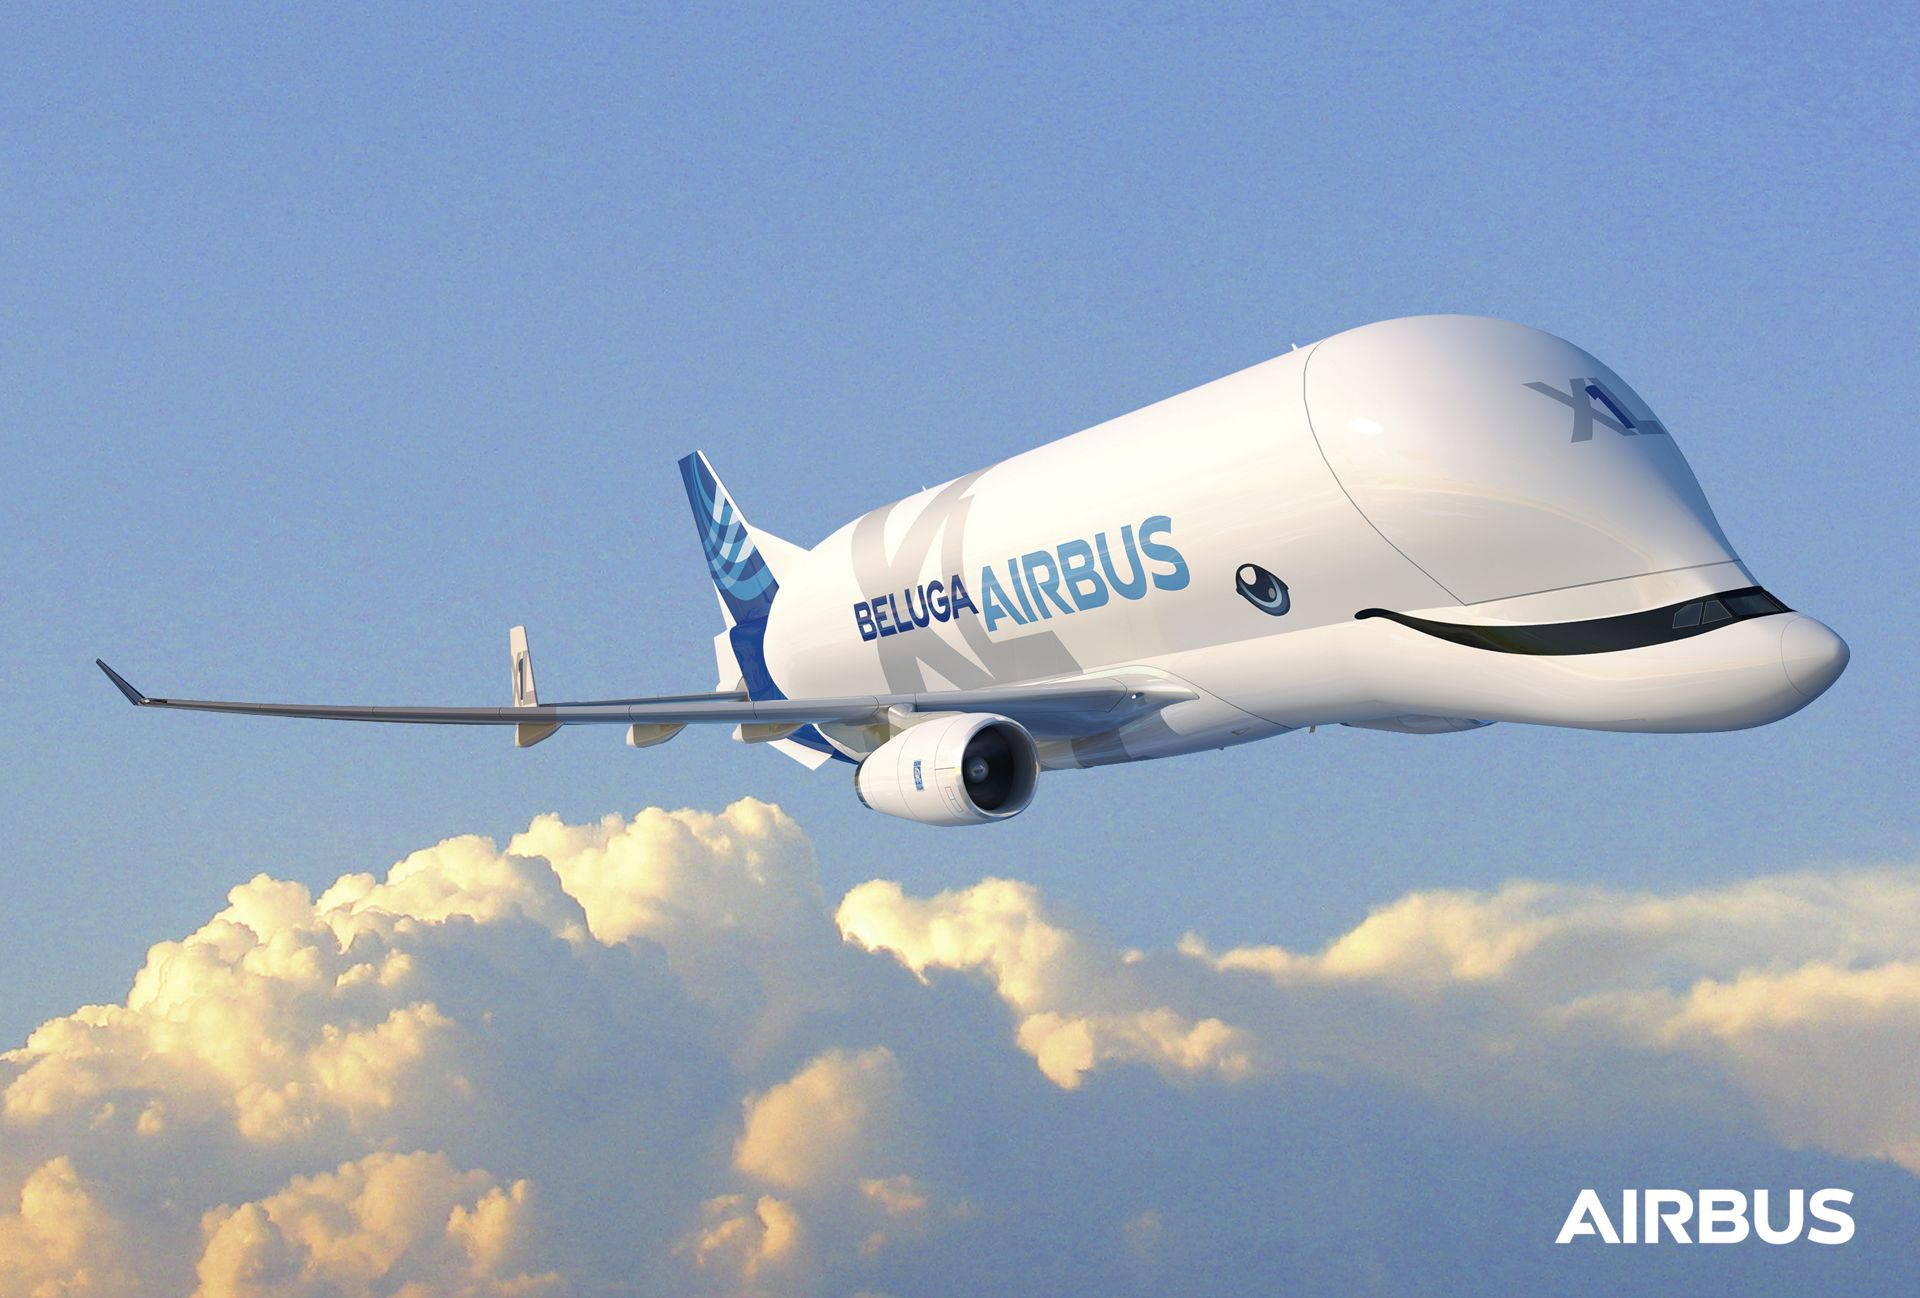 https://airbus-h.assetsadobe2.com/is/image/content/dam/products-and-solutions/commercial-aircraft/beluga/belugaxl/BelugaXL.jpg?wid=1920&fit=fit,1&qlt=85,0